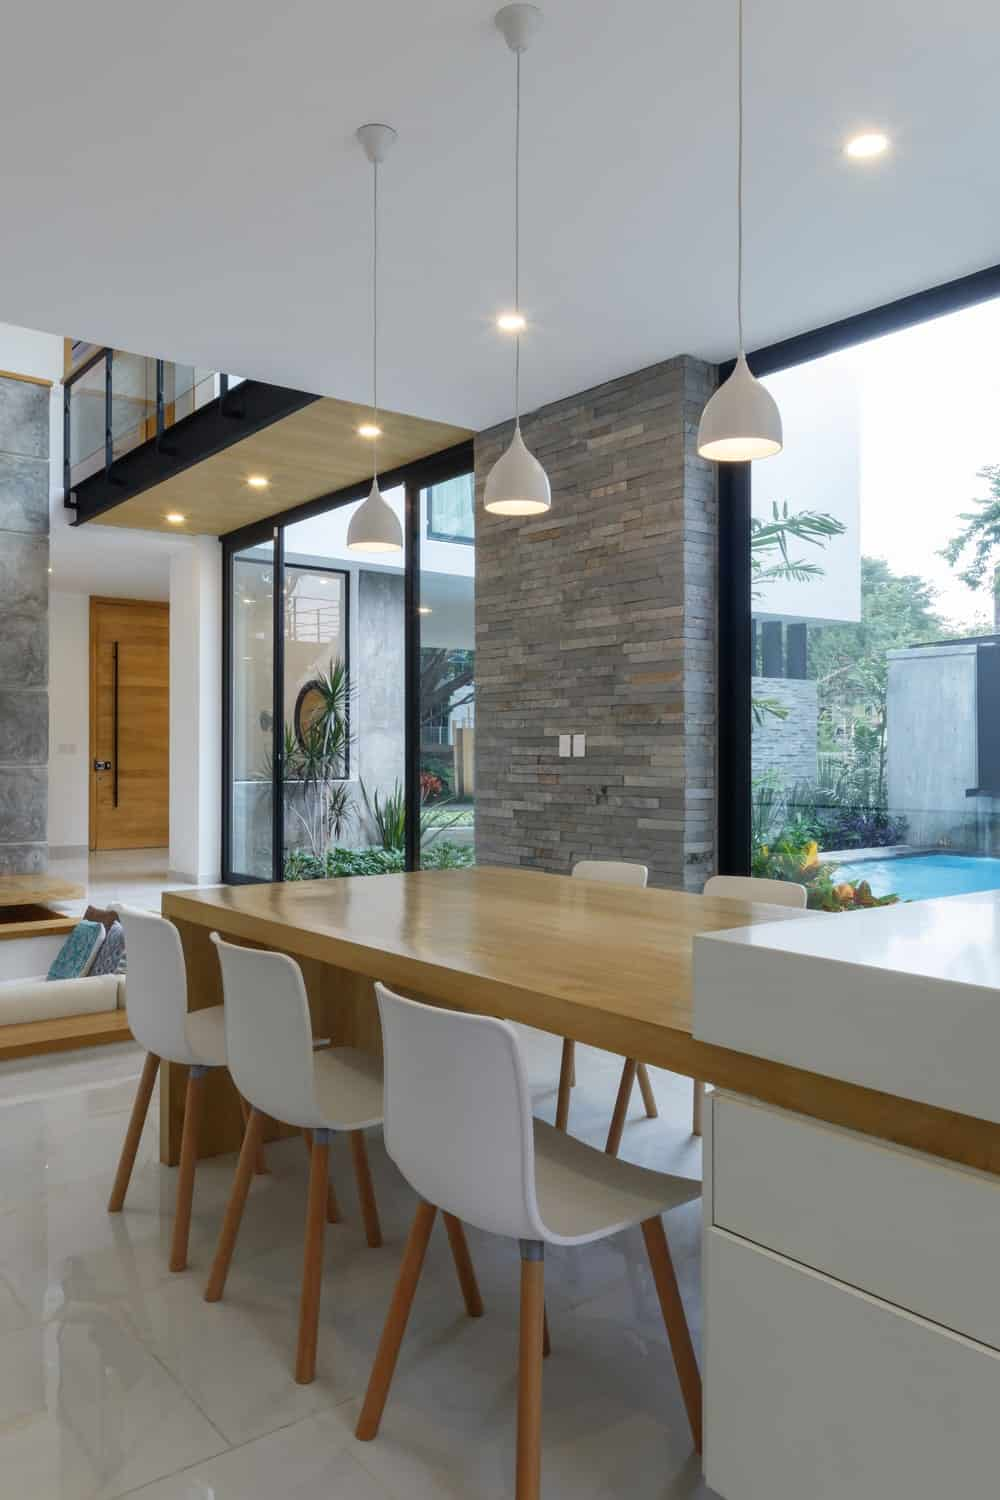 The wooden dining table is surrounded by white modern chairs and topped with a row of white modern pendant lights.